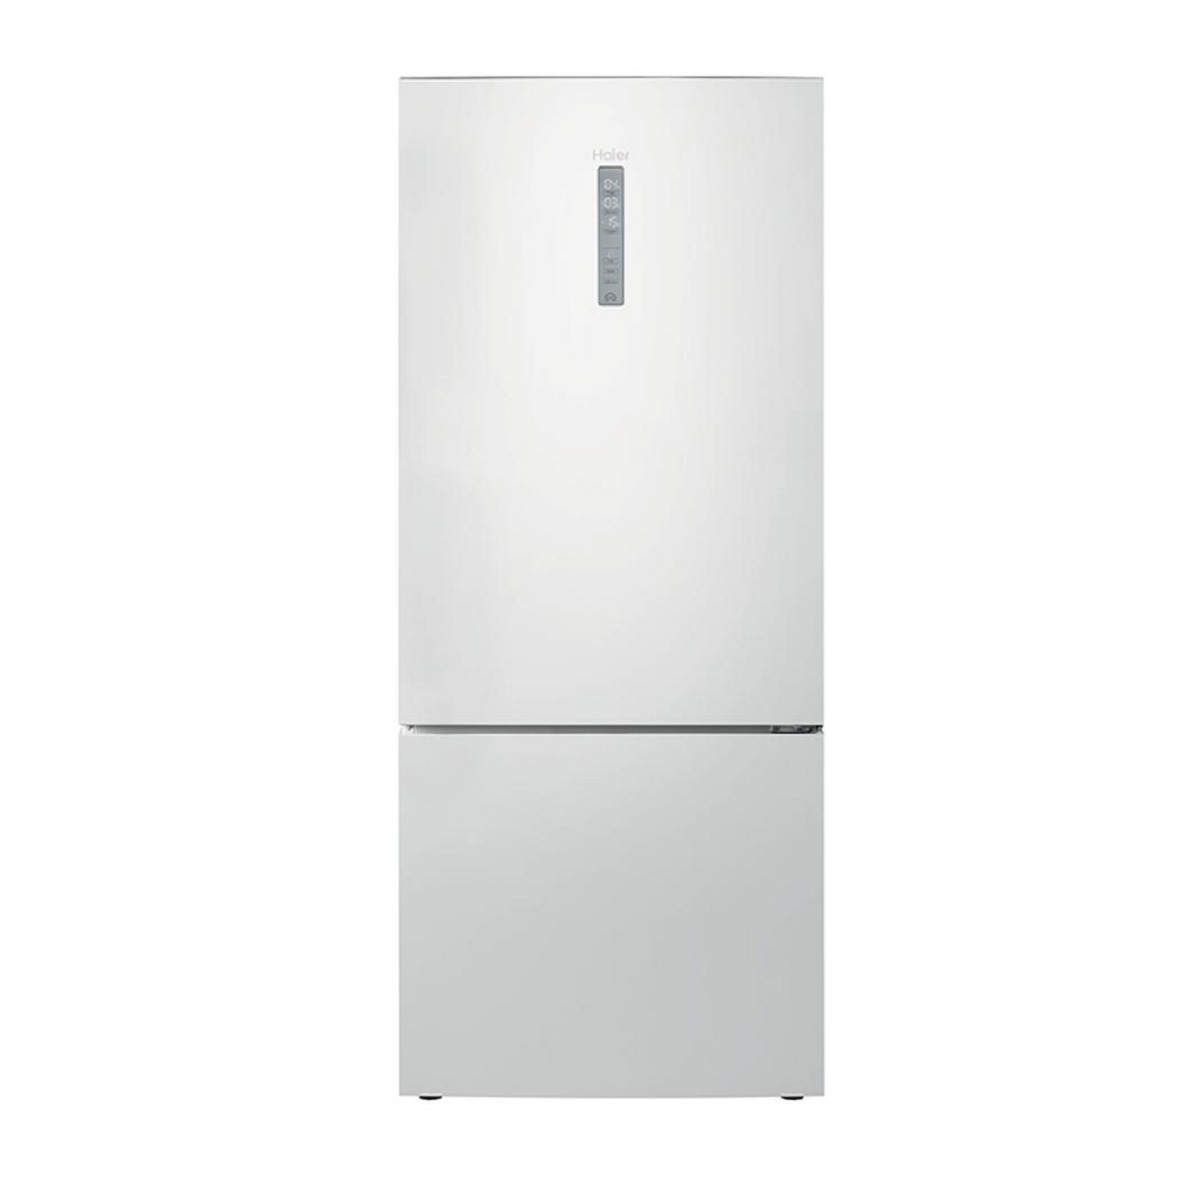 Haier HBM450WH1 450L Bottom Mount Fridge